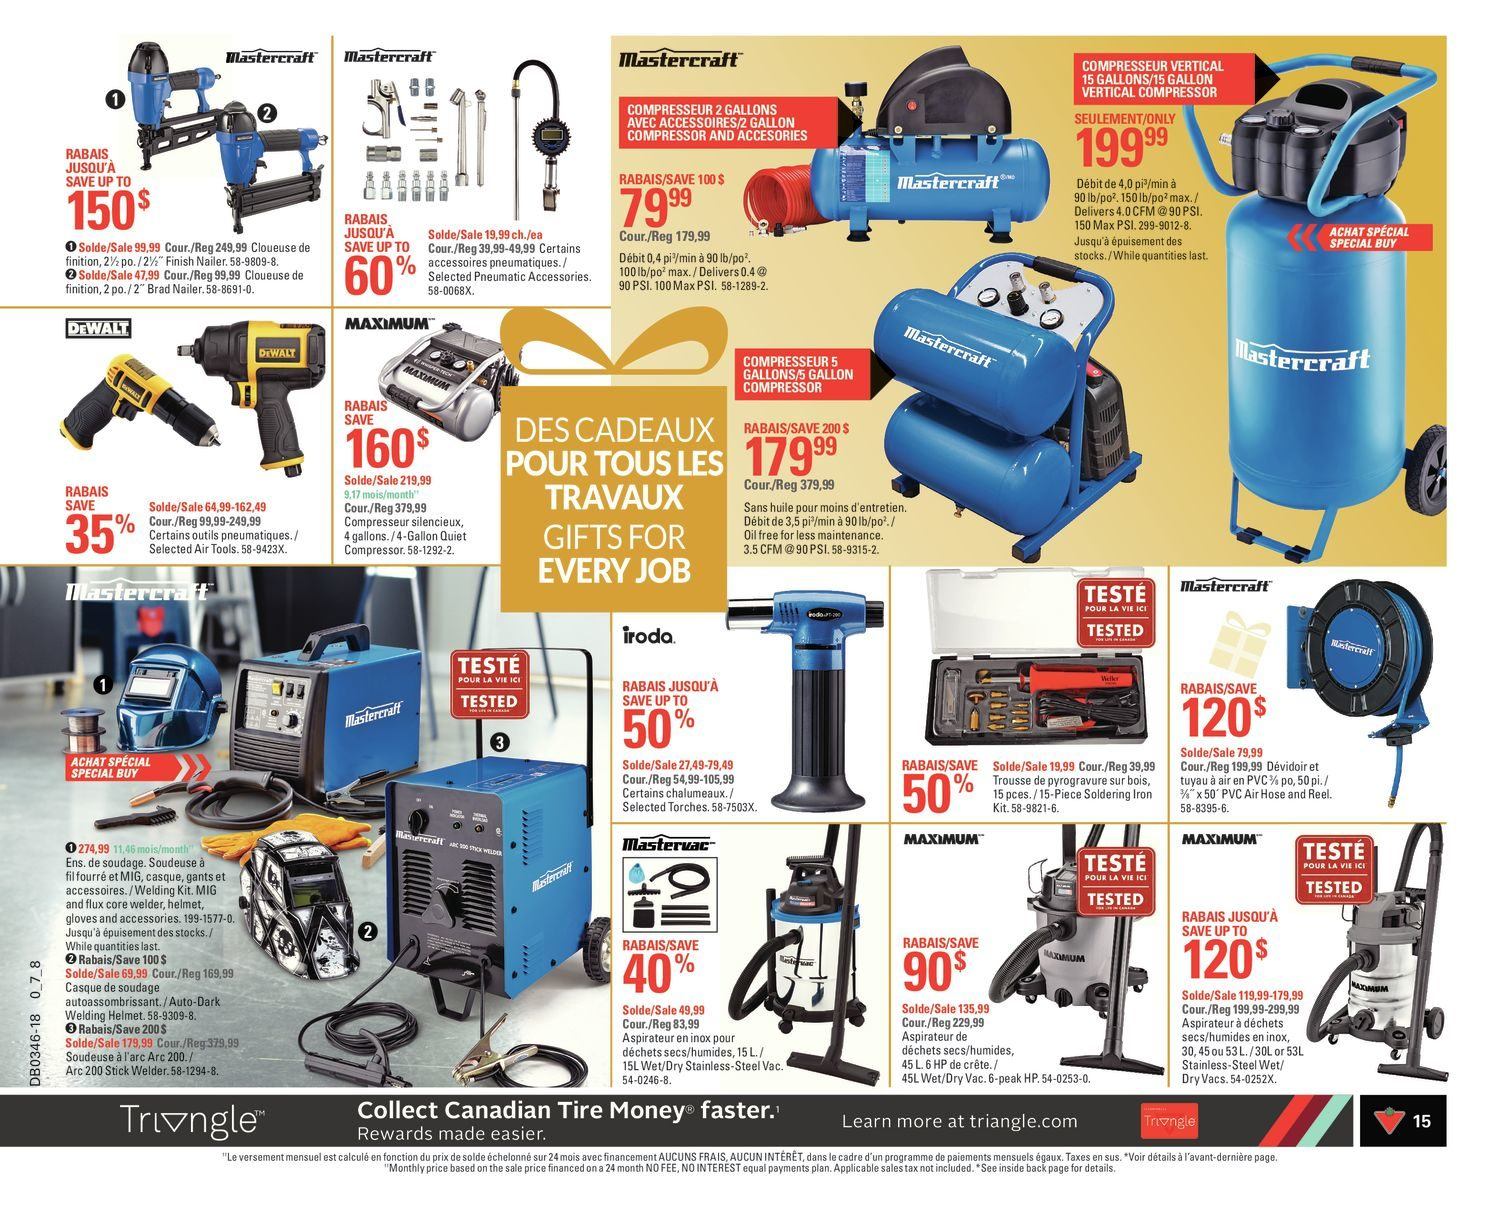 Canadian Tire Weekly Flyer Share The Joy Nov 8 14 Arcfault Circuit Breaker Pros In Colorado Precision Plumbing And